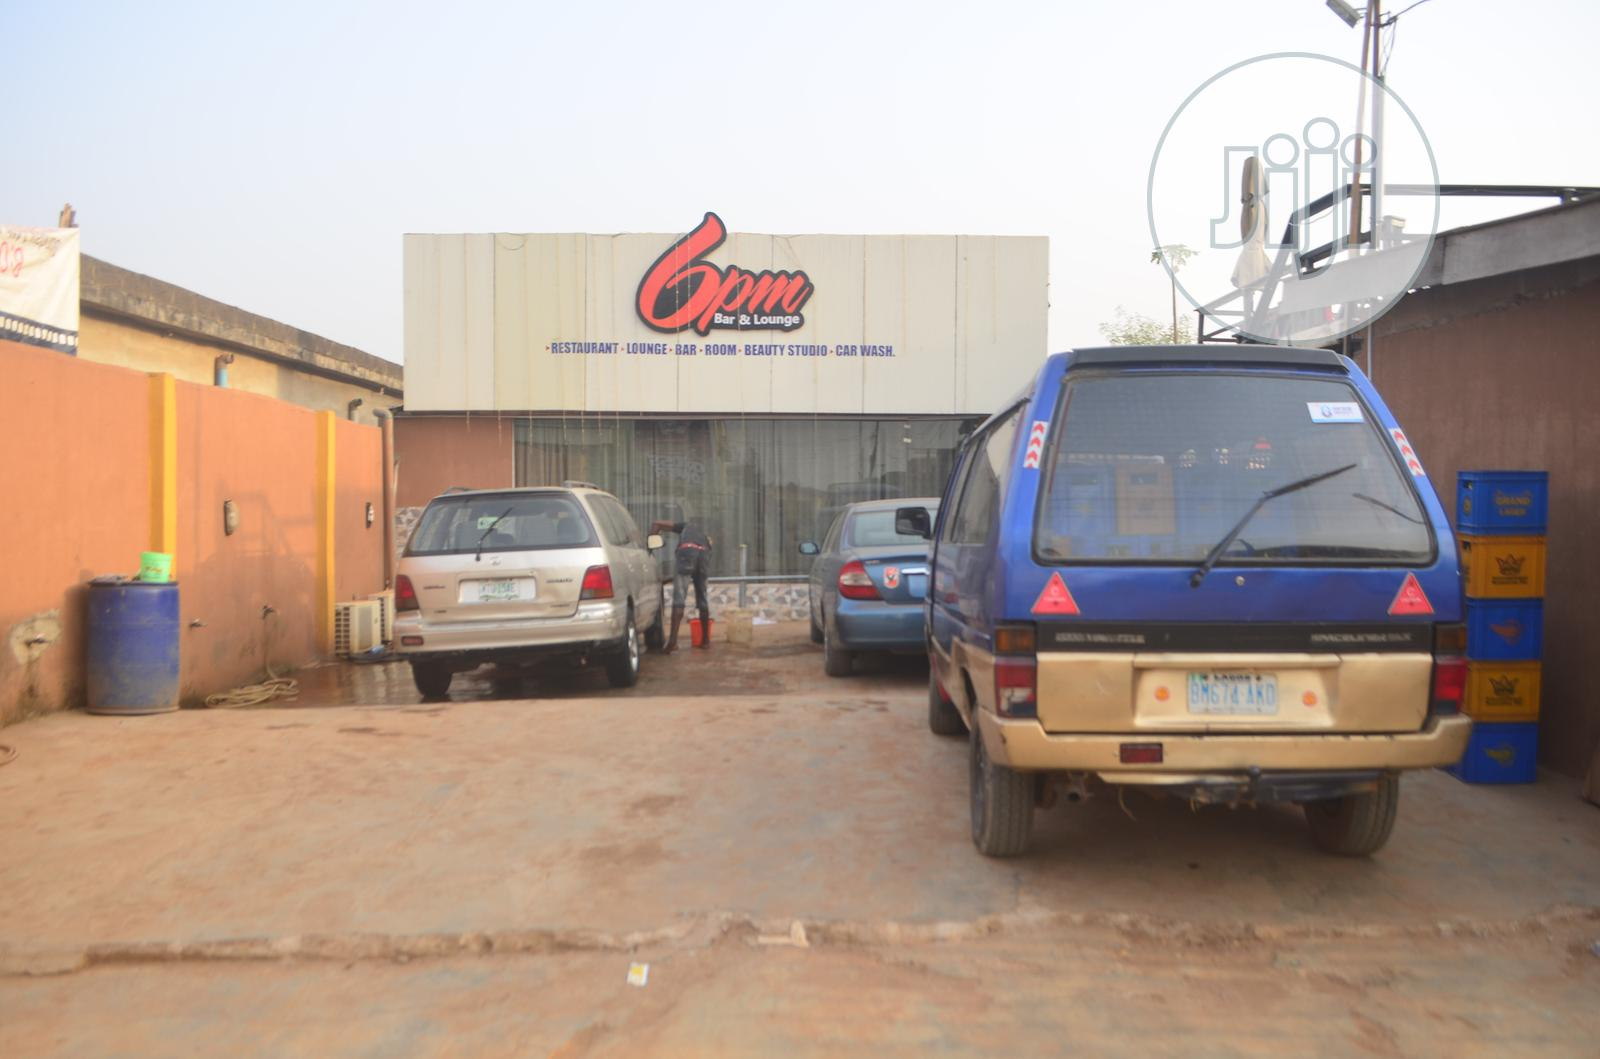 Bar & Night Club Business For Sale